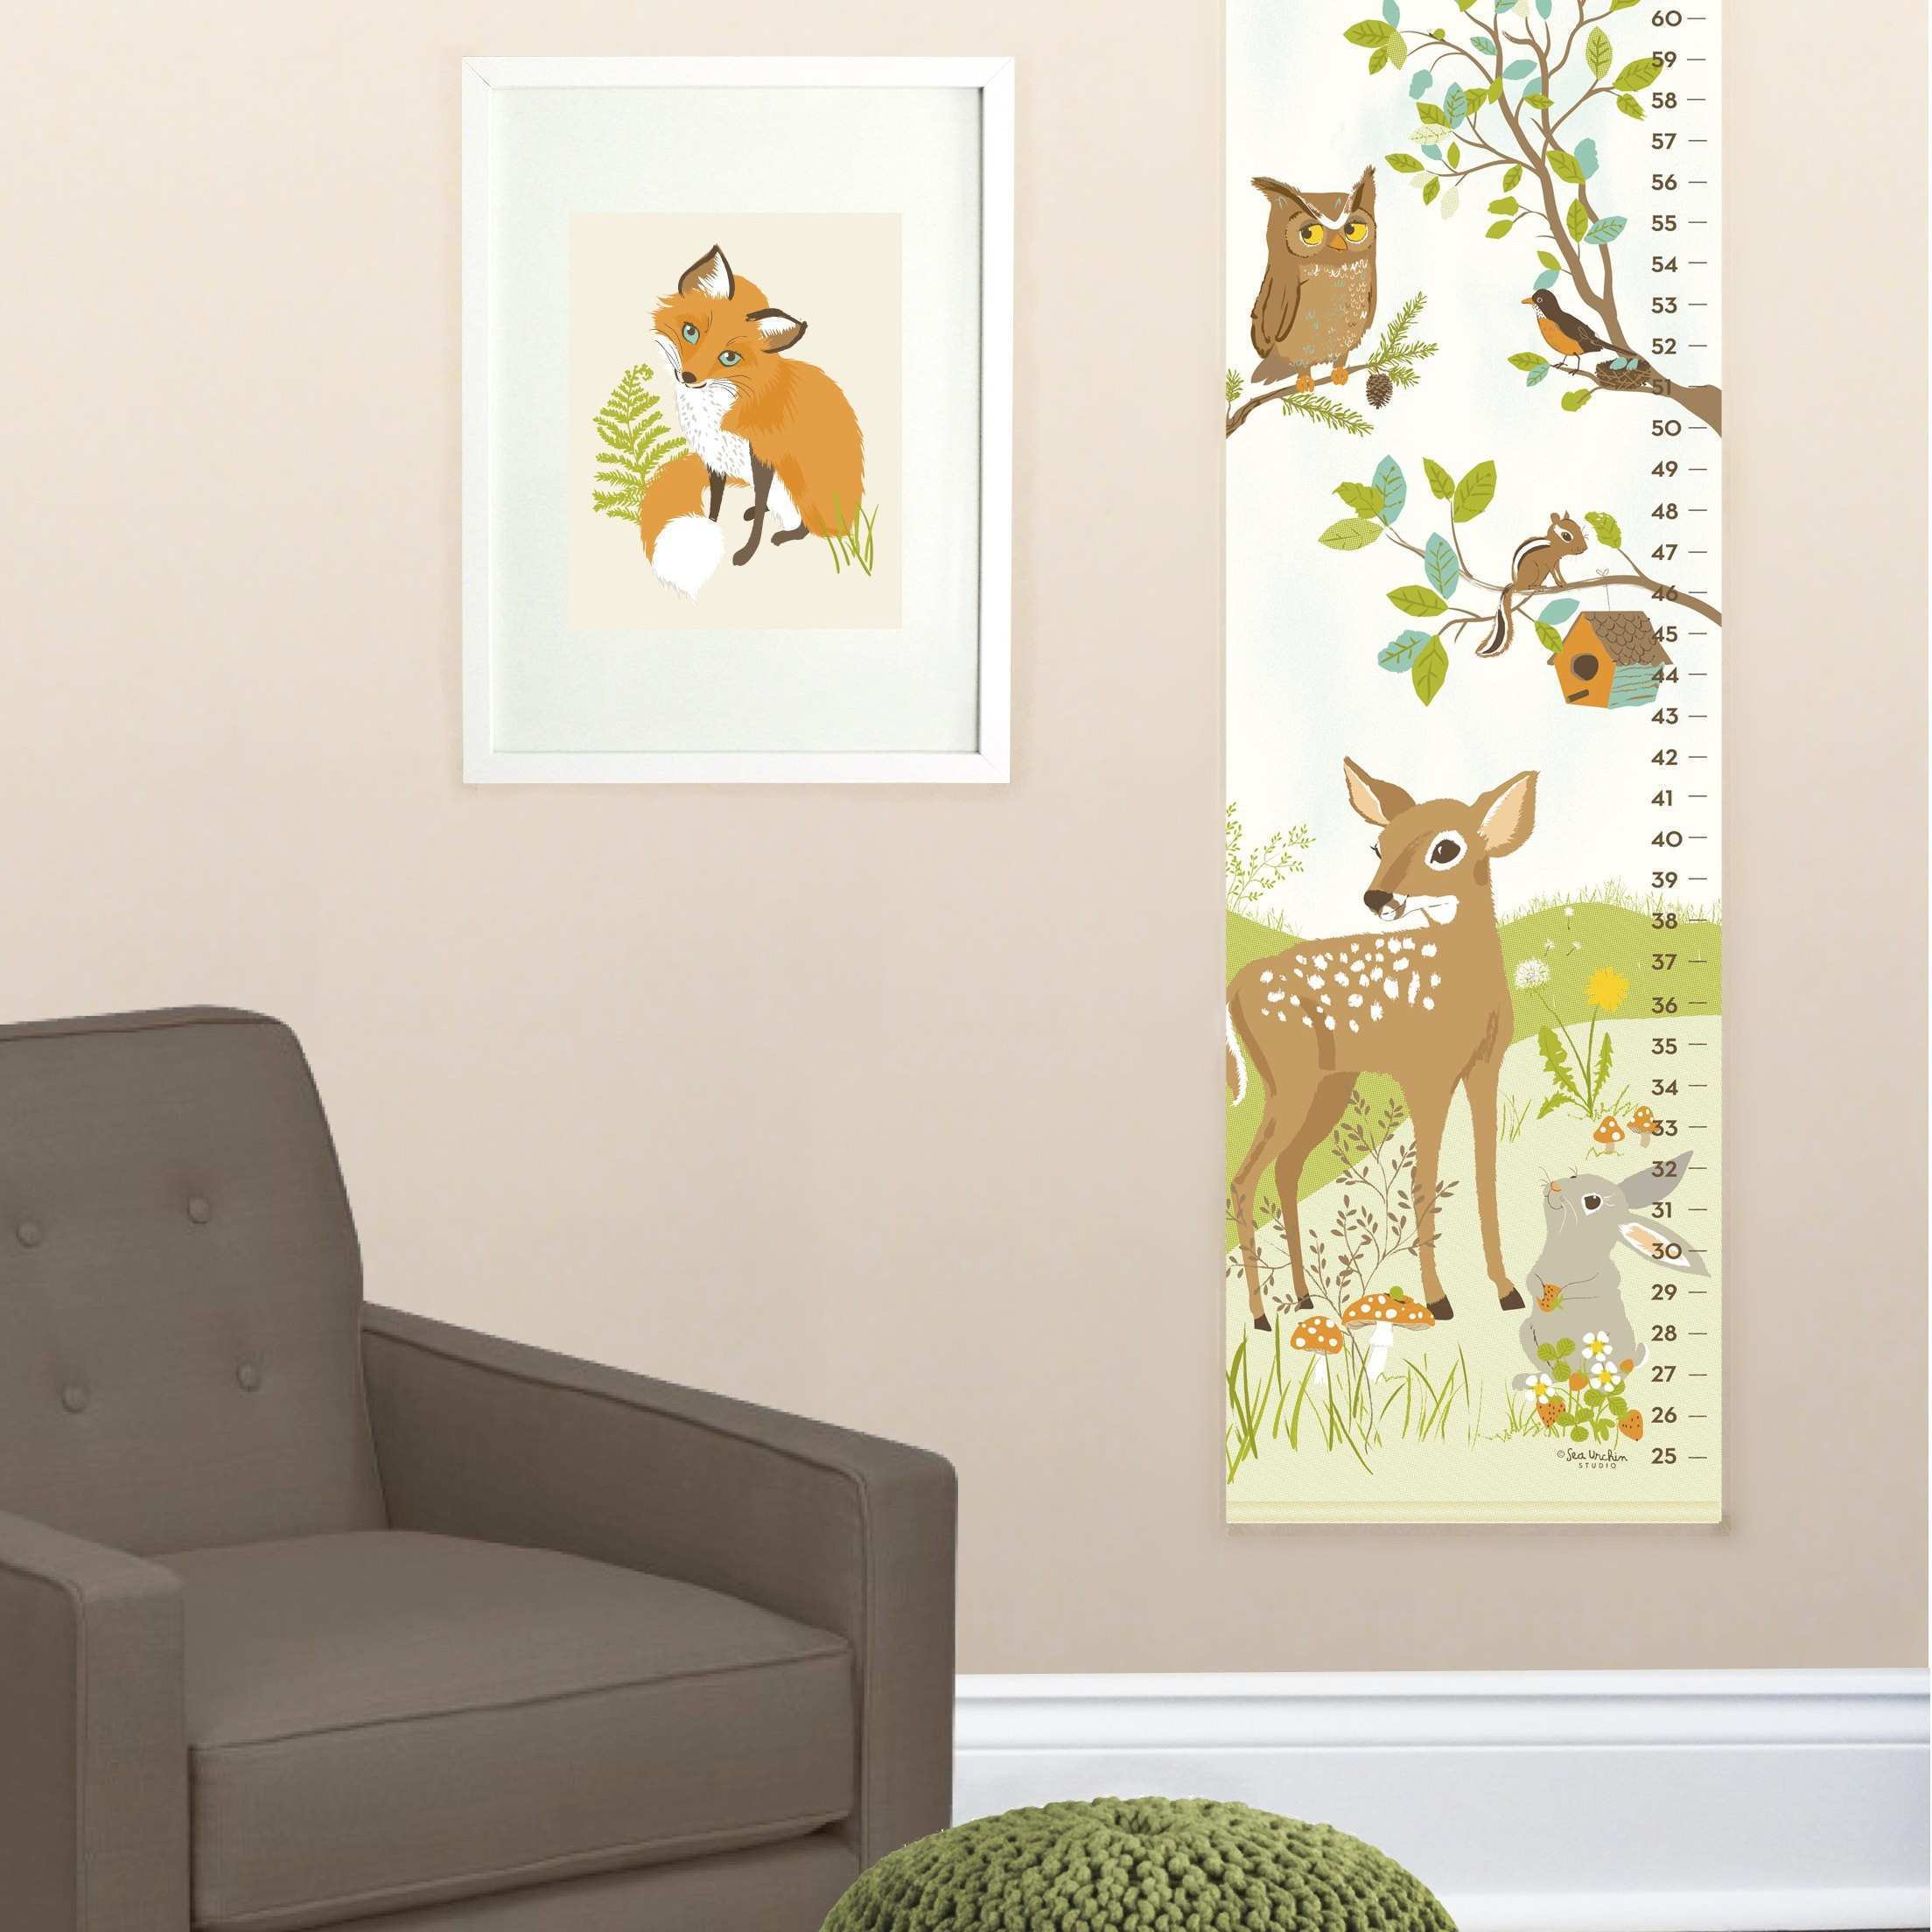 35 New Peel and Stick Wall Decals